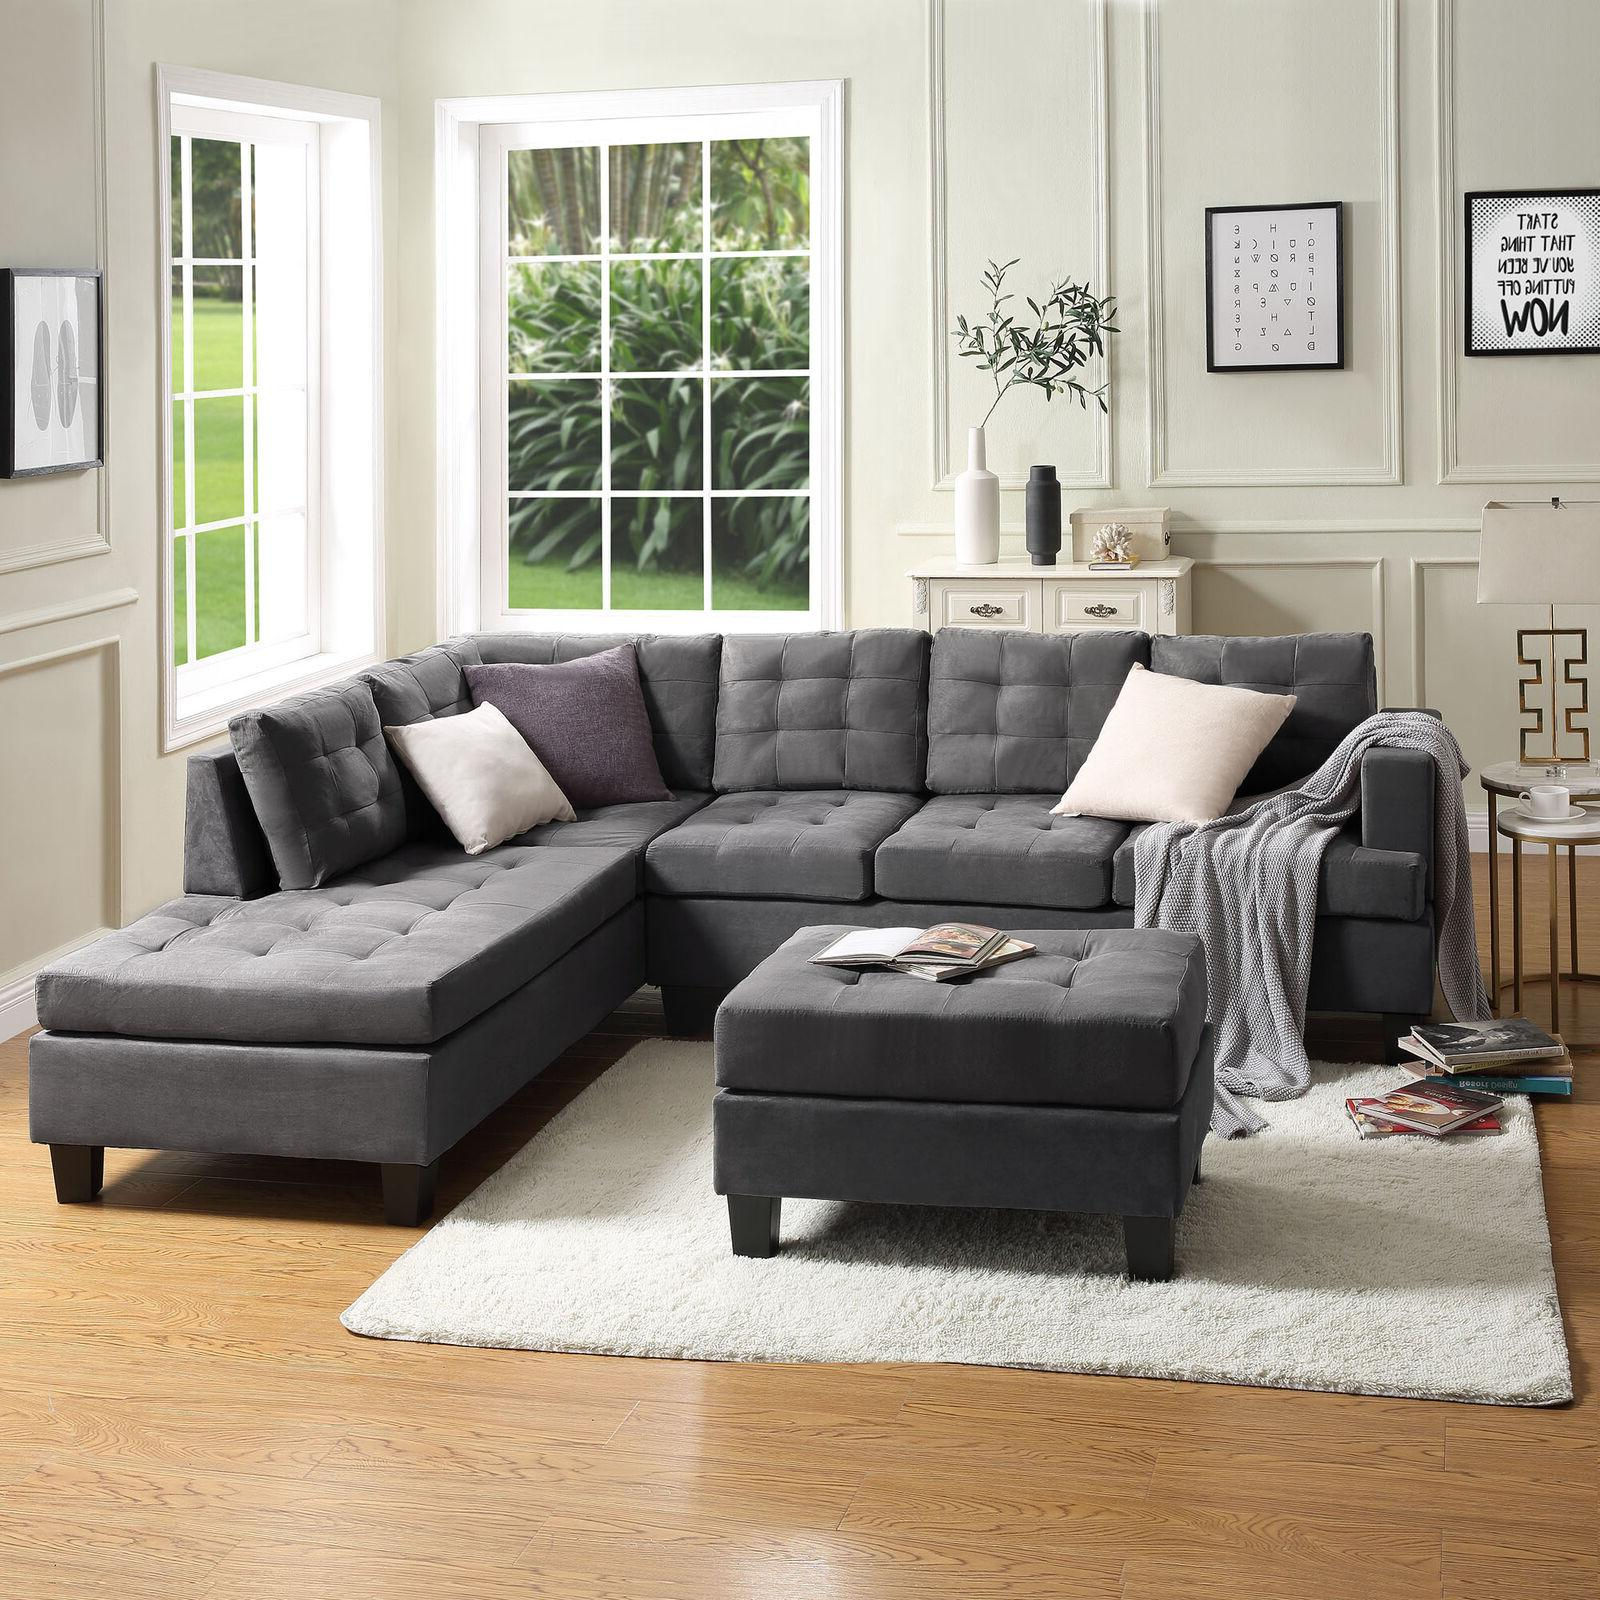 3-Piece Sectional Lounge Storage L-Shaped Couch Blue